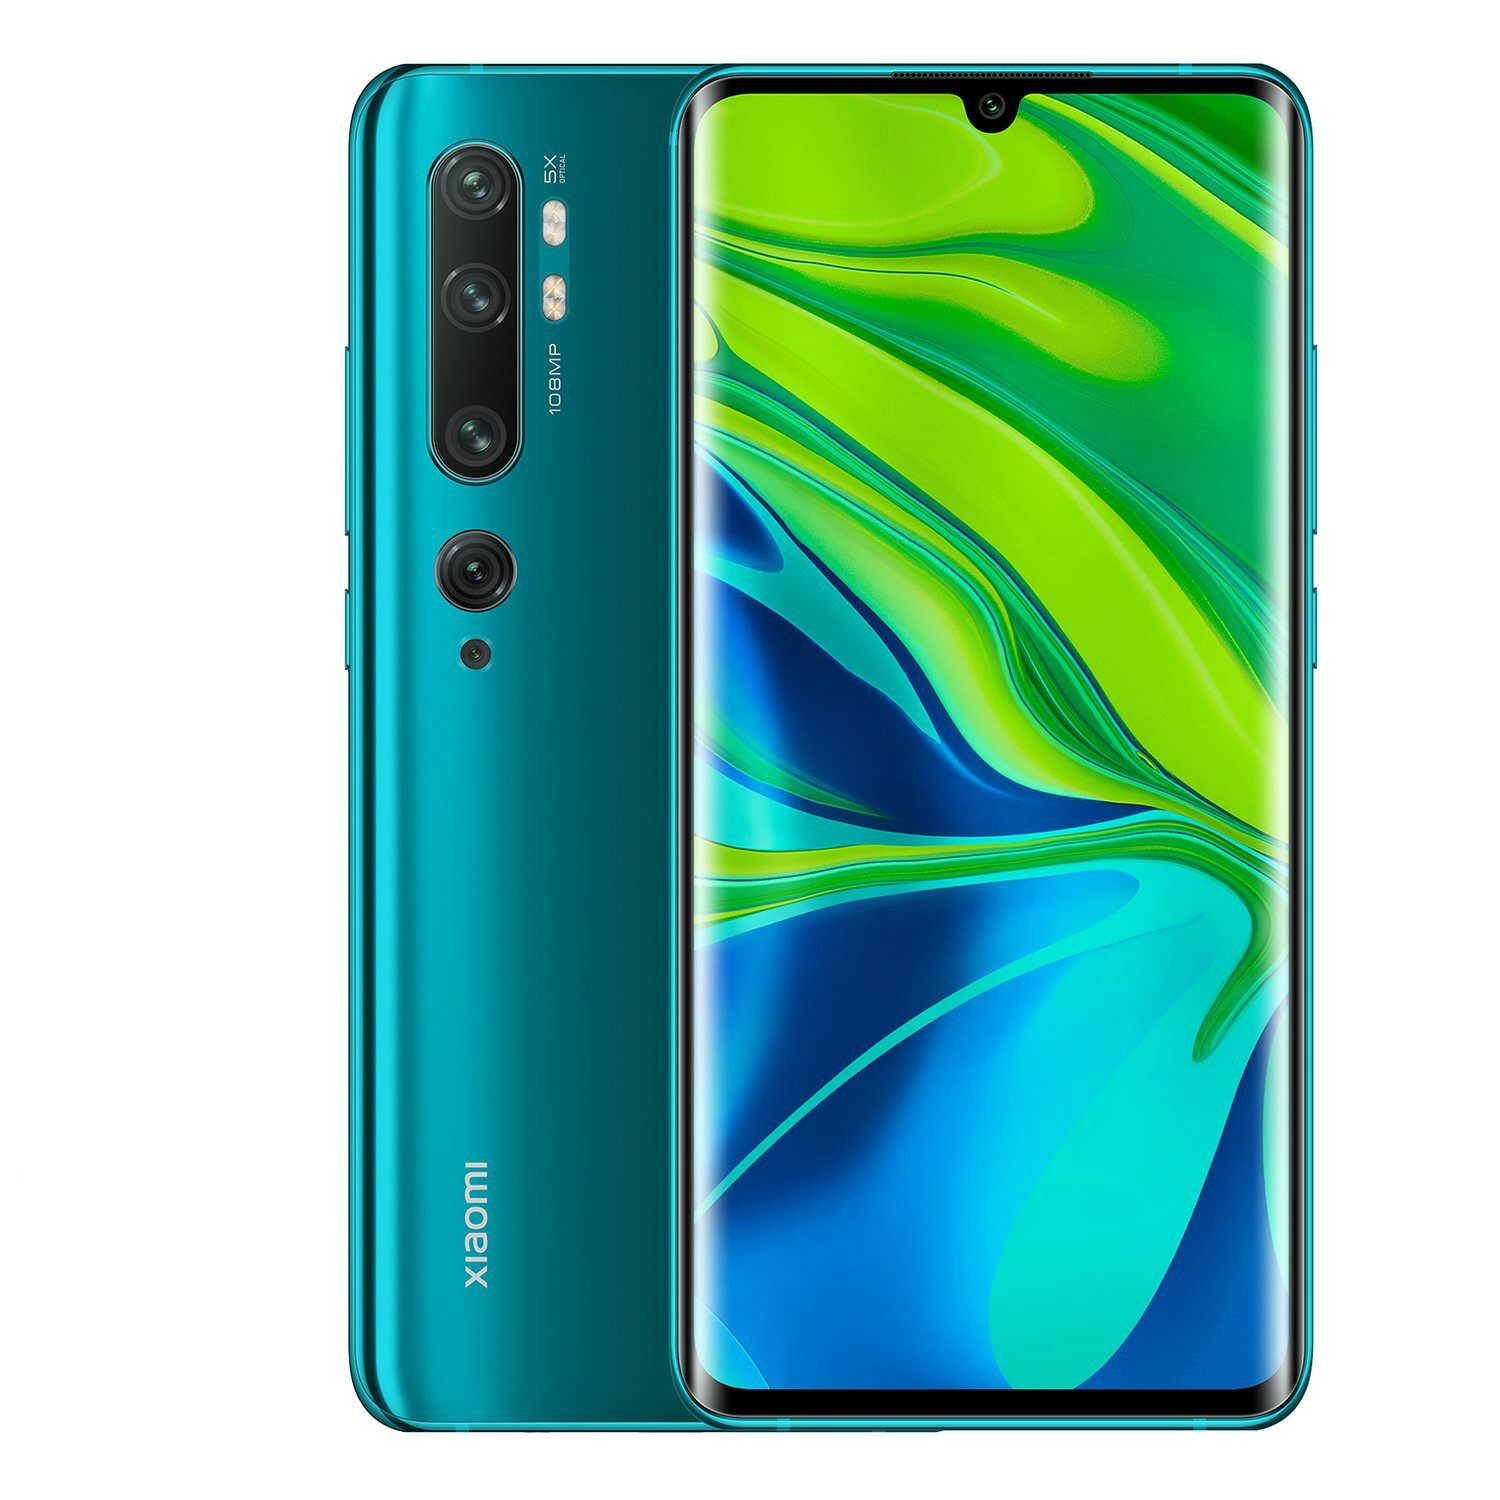 Image of Xiaomi Mi Note 10 Pro 8GB/256GB Dual Sim - Aurora Green